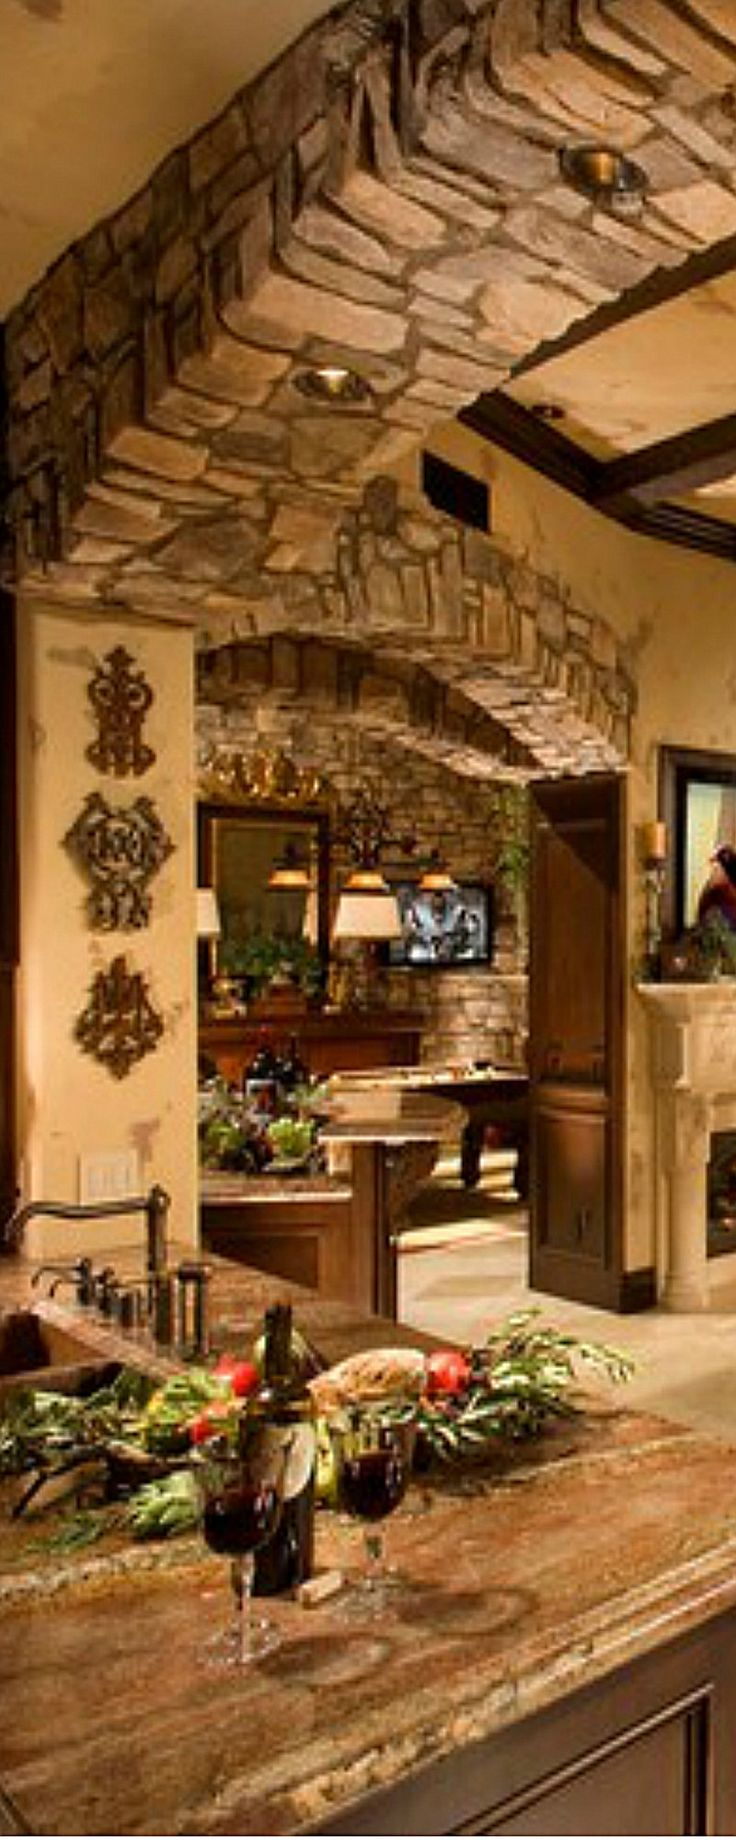 best 20 tuscany kitchen ideas on pinterest tuscany kitchen arches more romantic kitchentuscan housetuscan